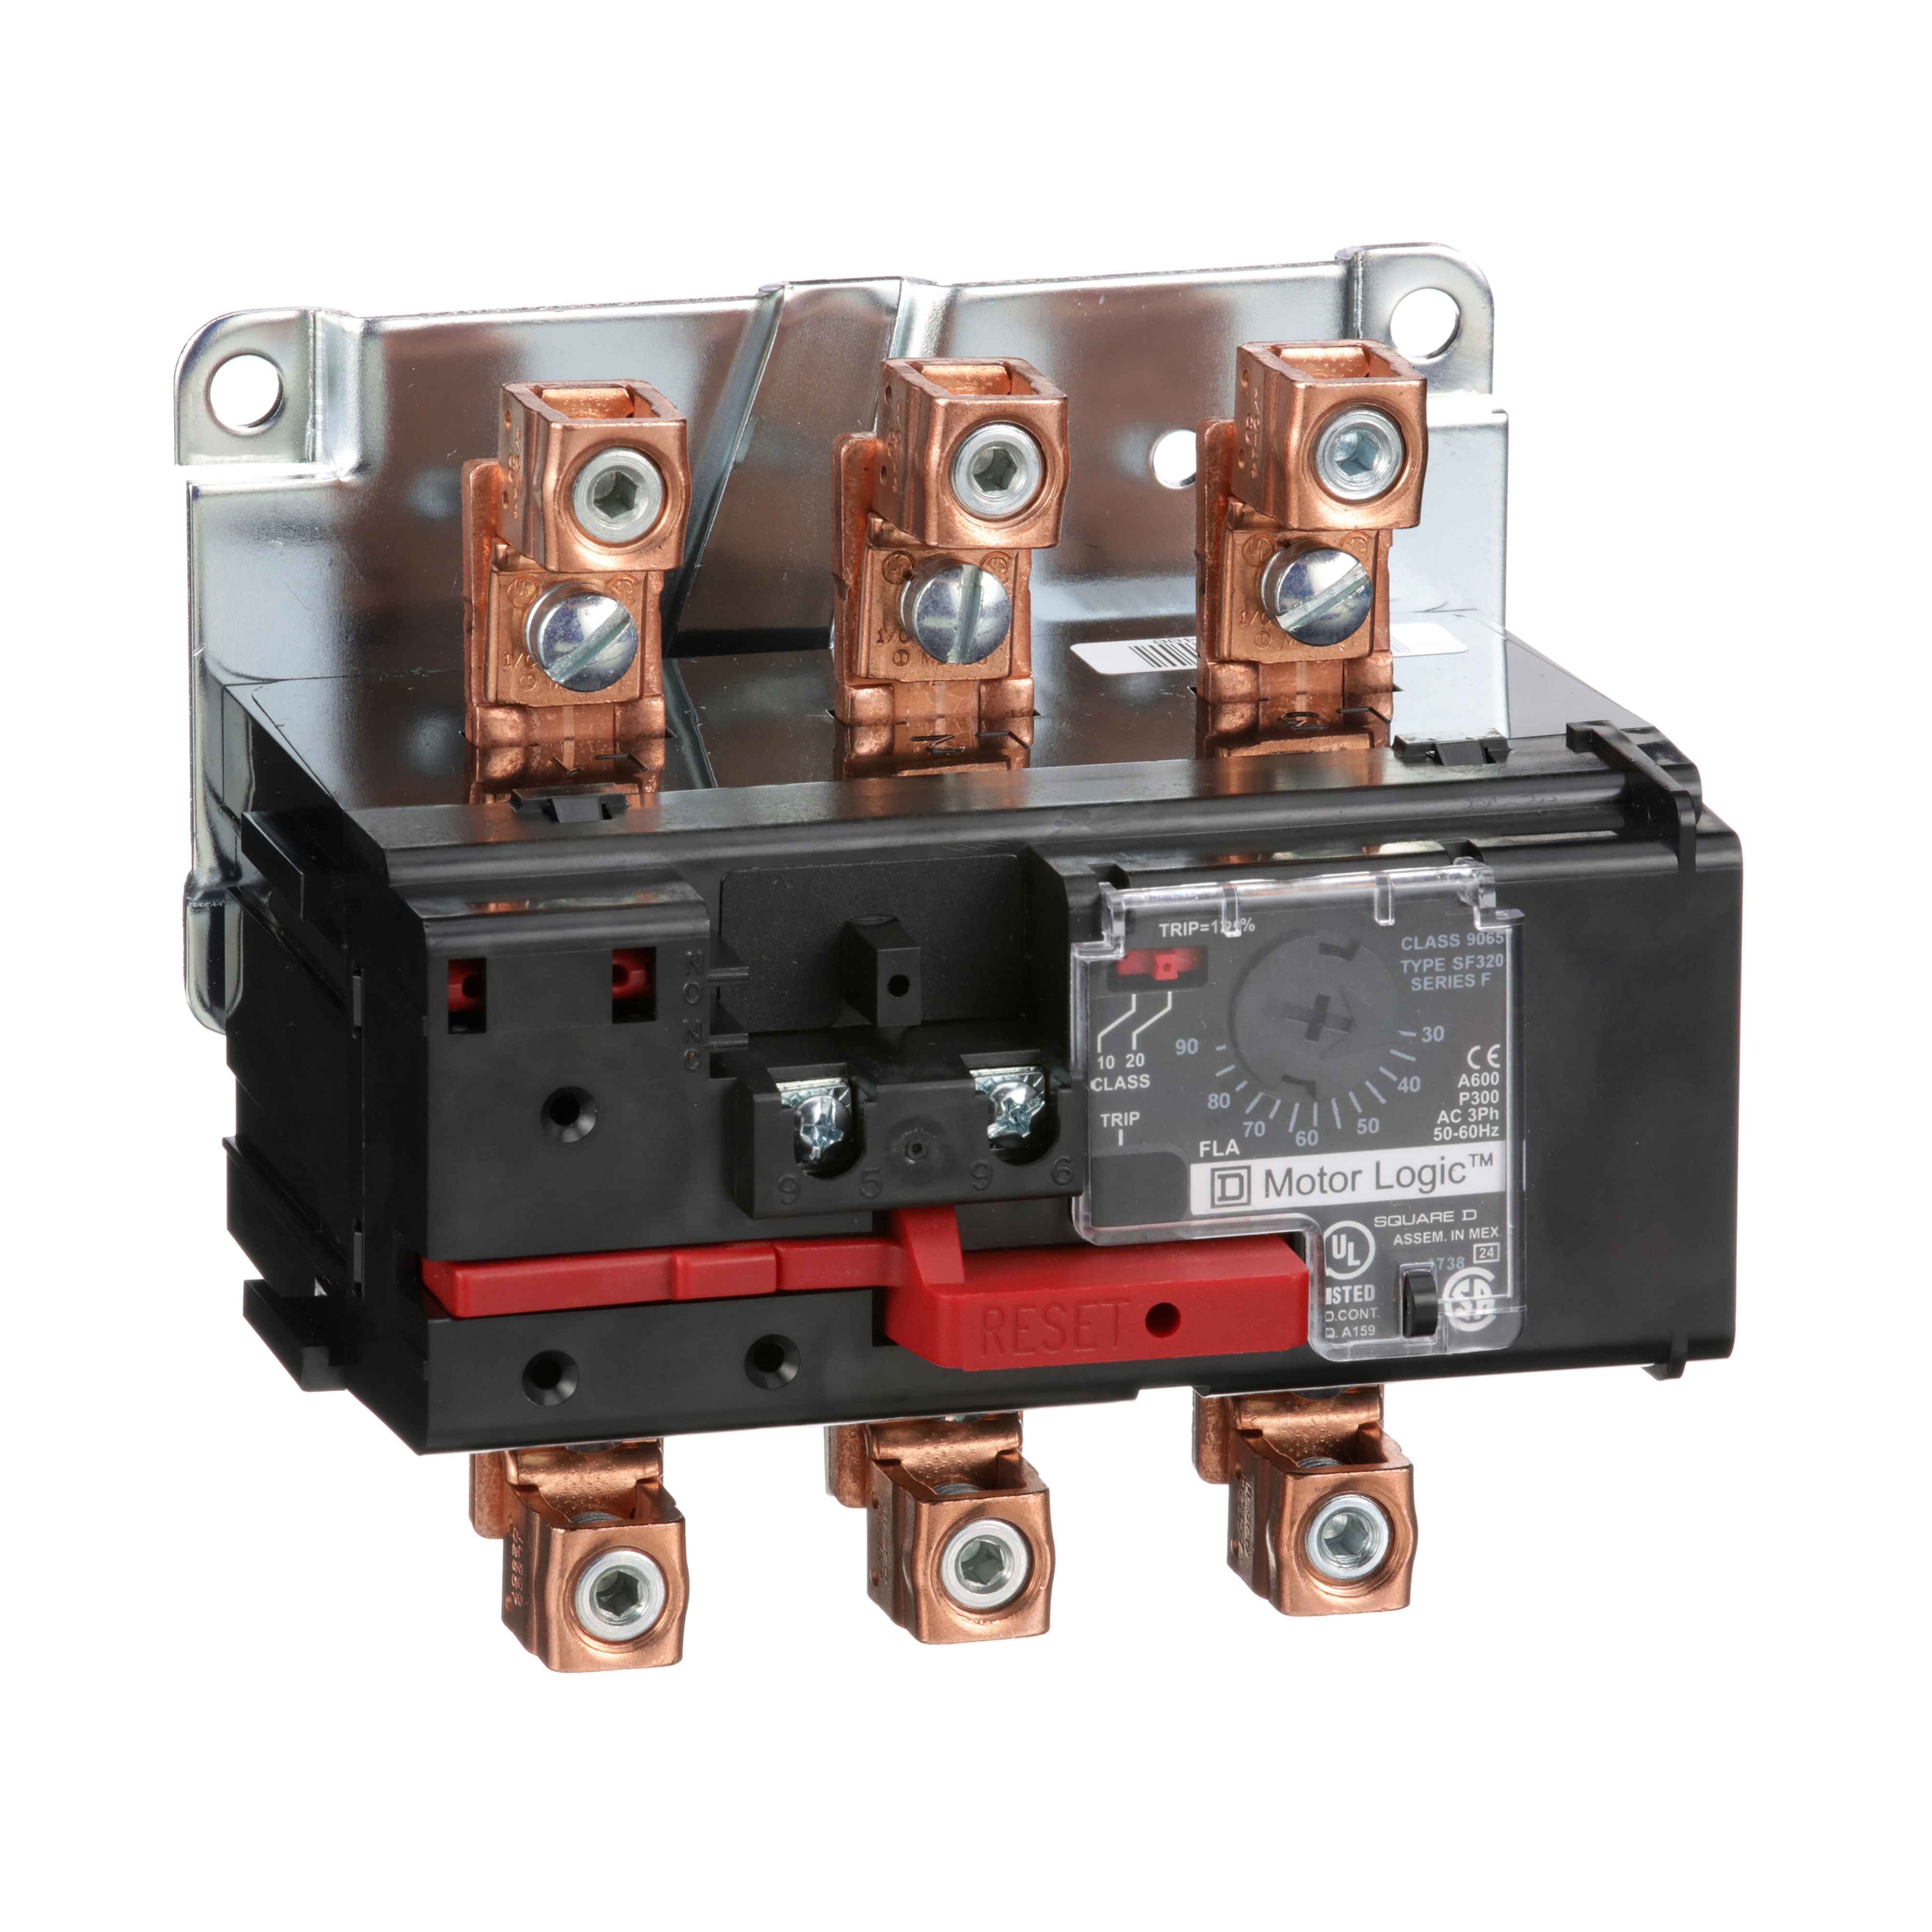 SQUARE D Motor Logic solid state overload relay, separate mount, NEMA Size 3, 30 to 90 A, 600 VAC